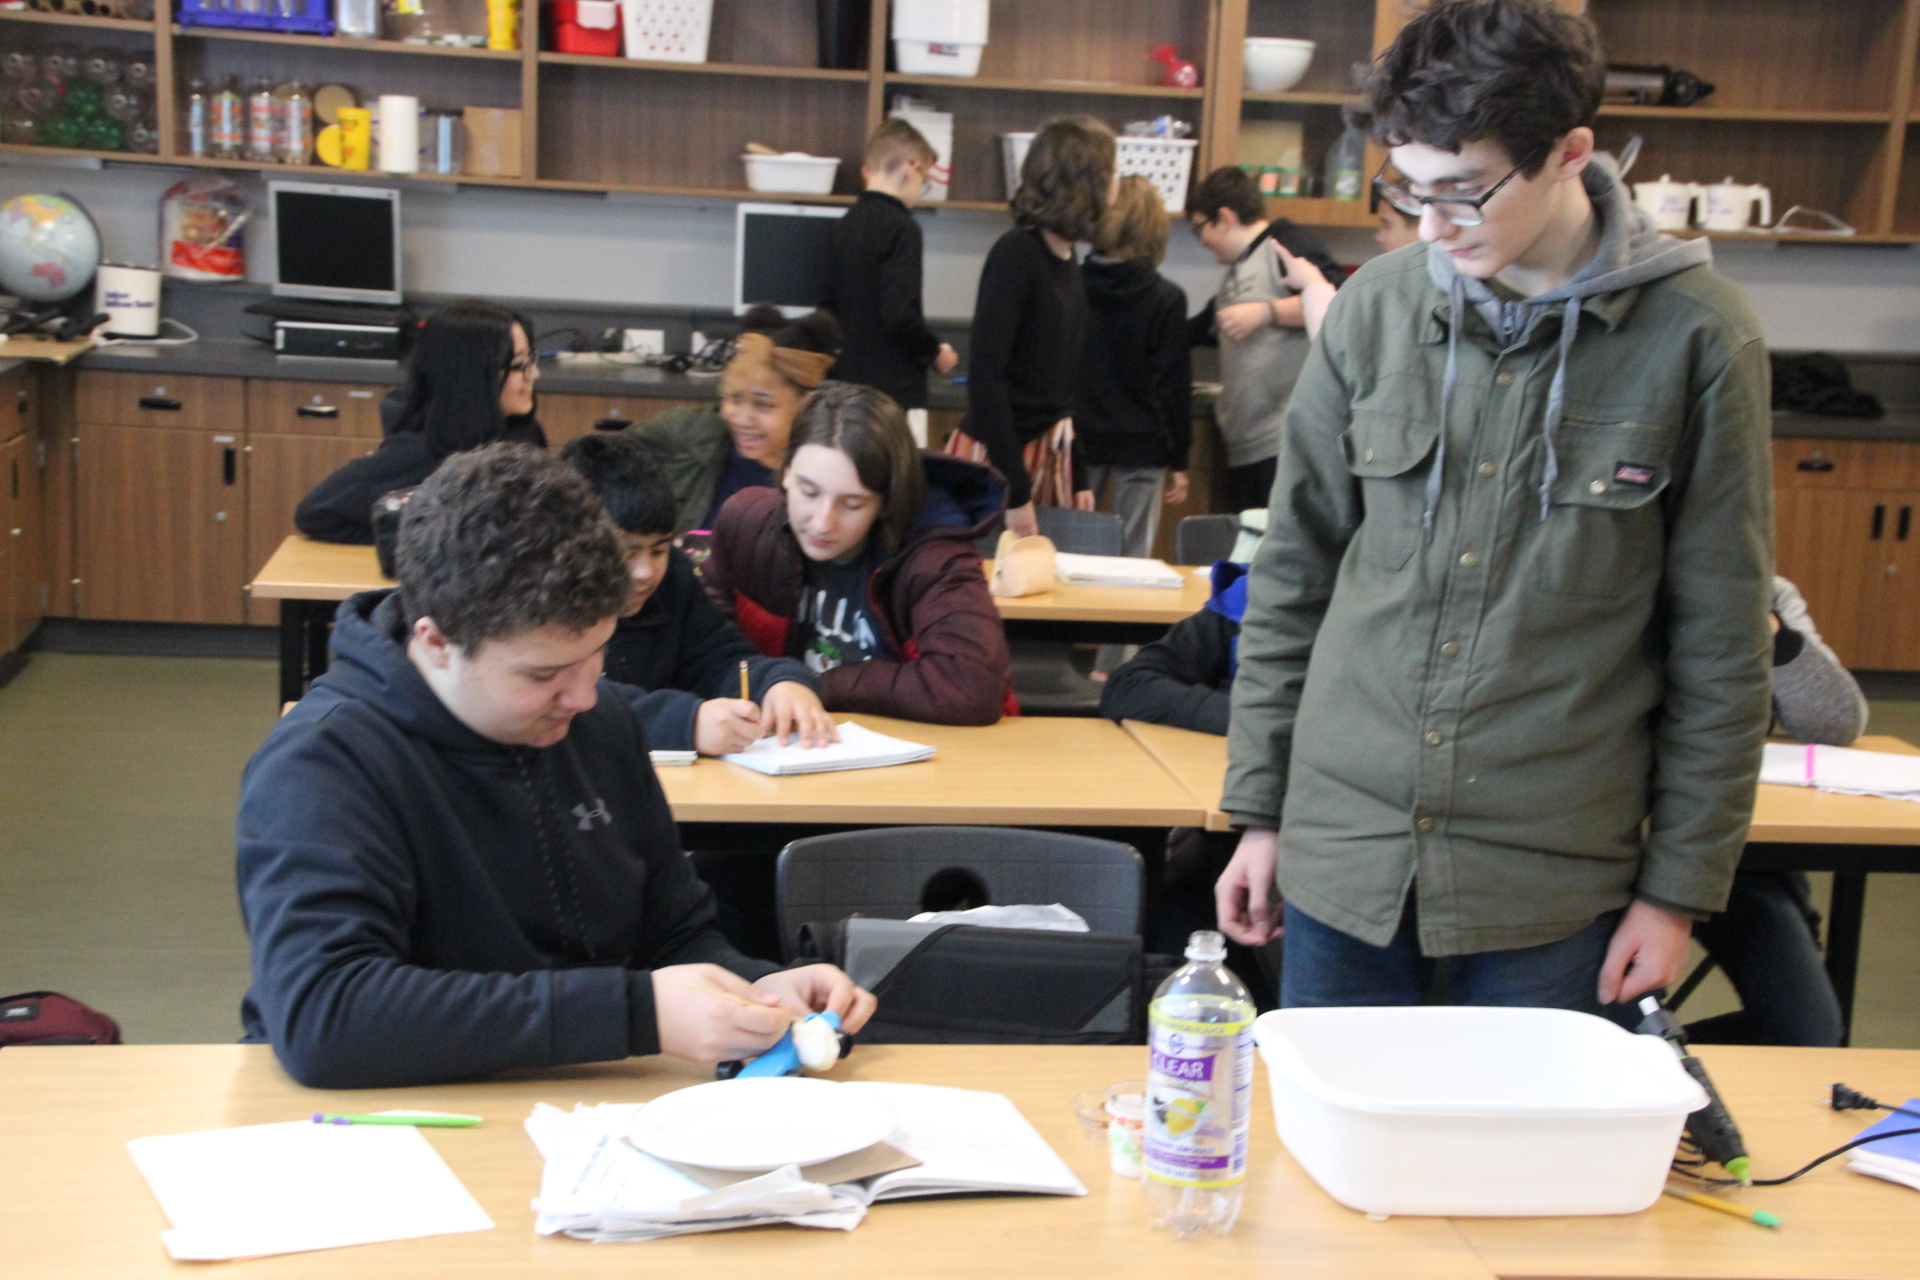 Students at Tumwater Middle School Enjoy an Engaging Science